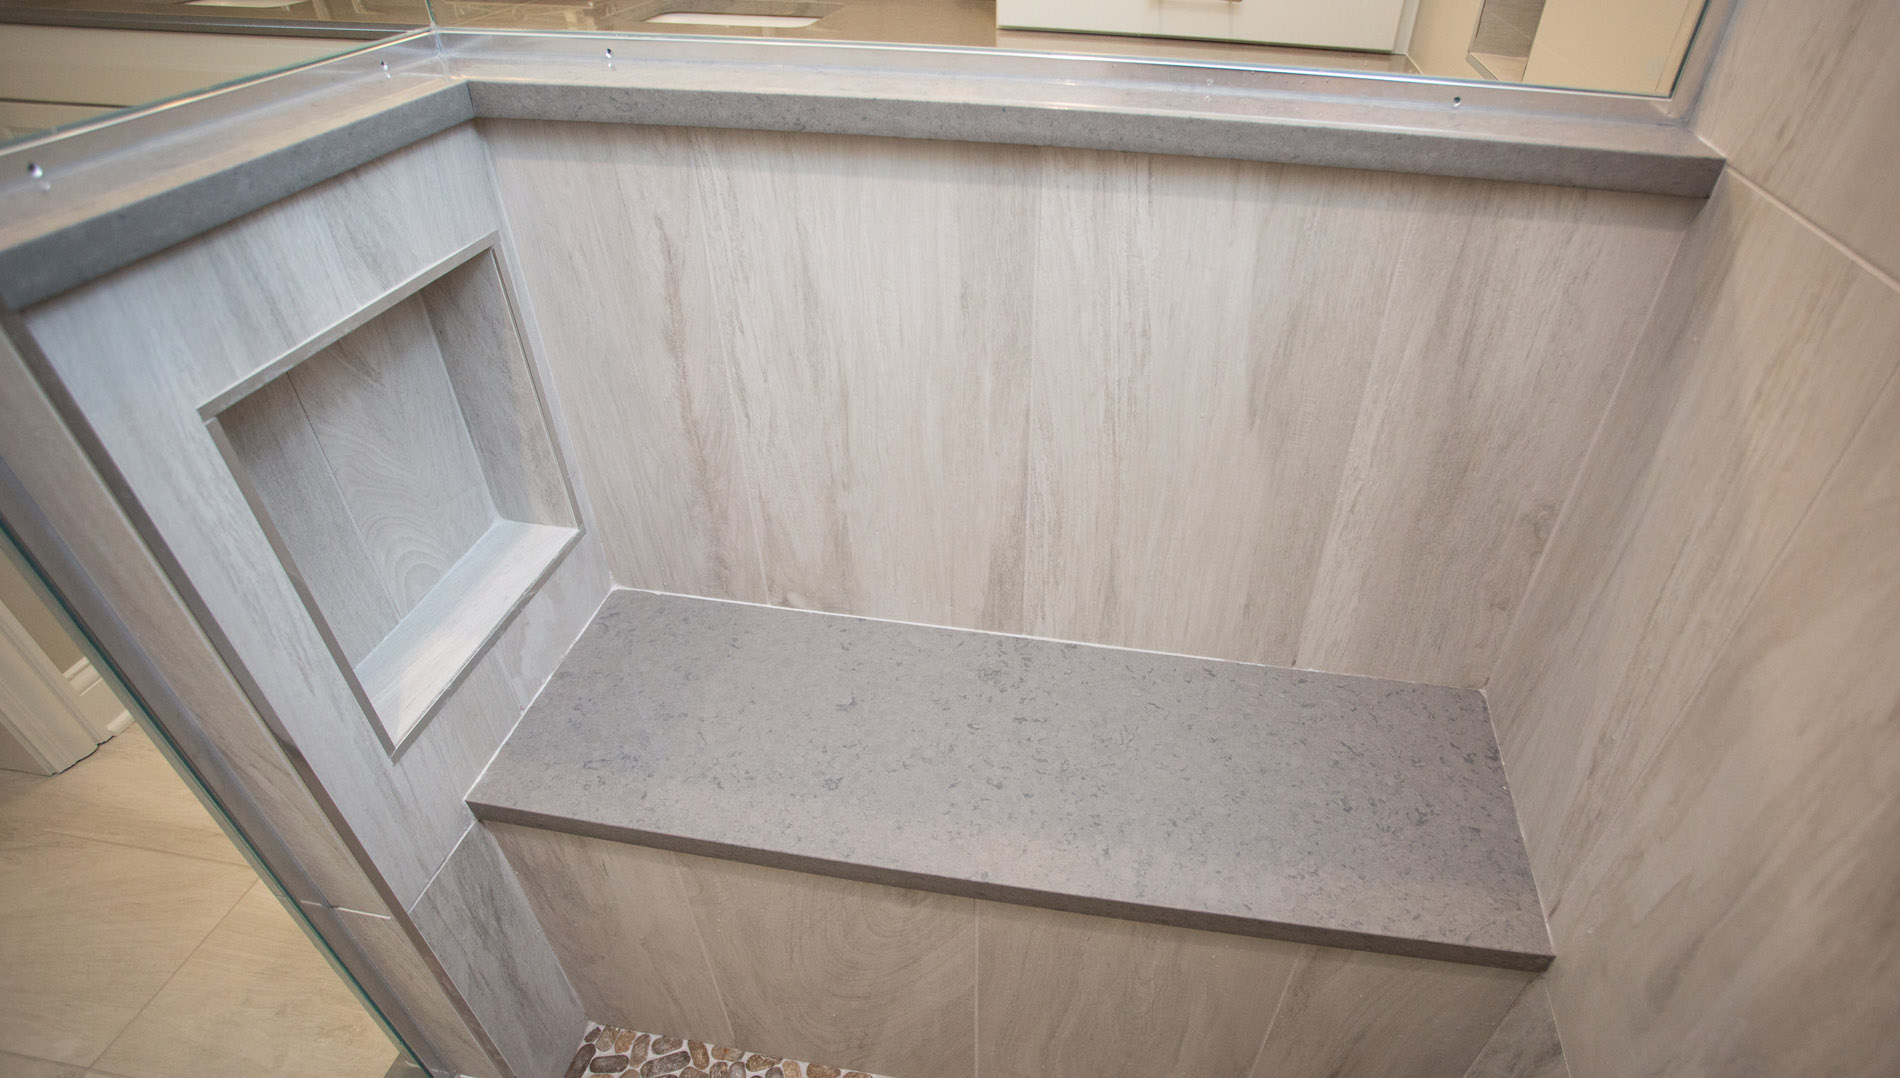 Bench seat and toiletry niche inside shower.